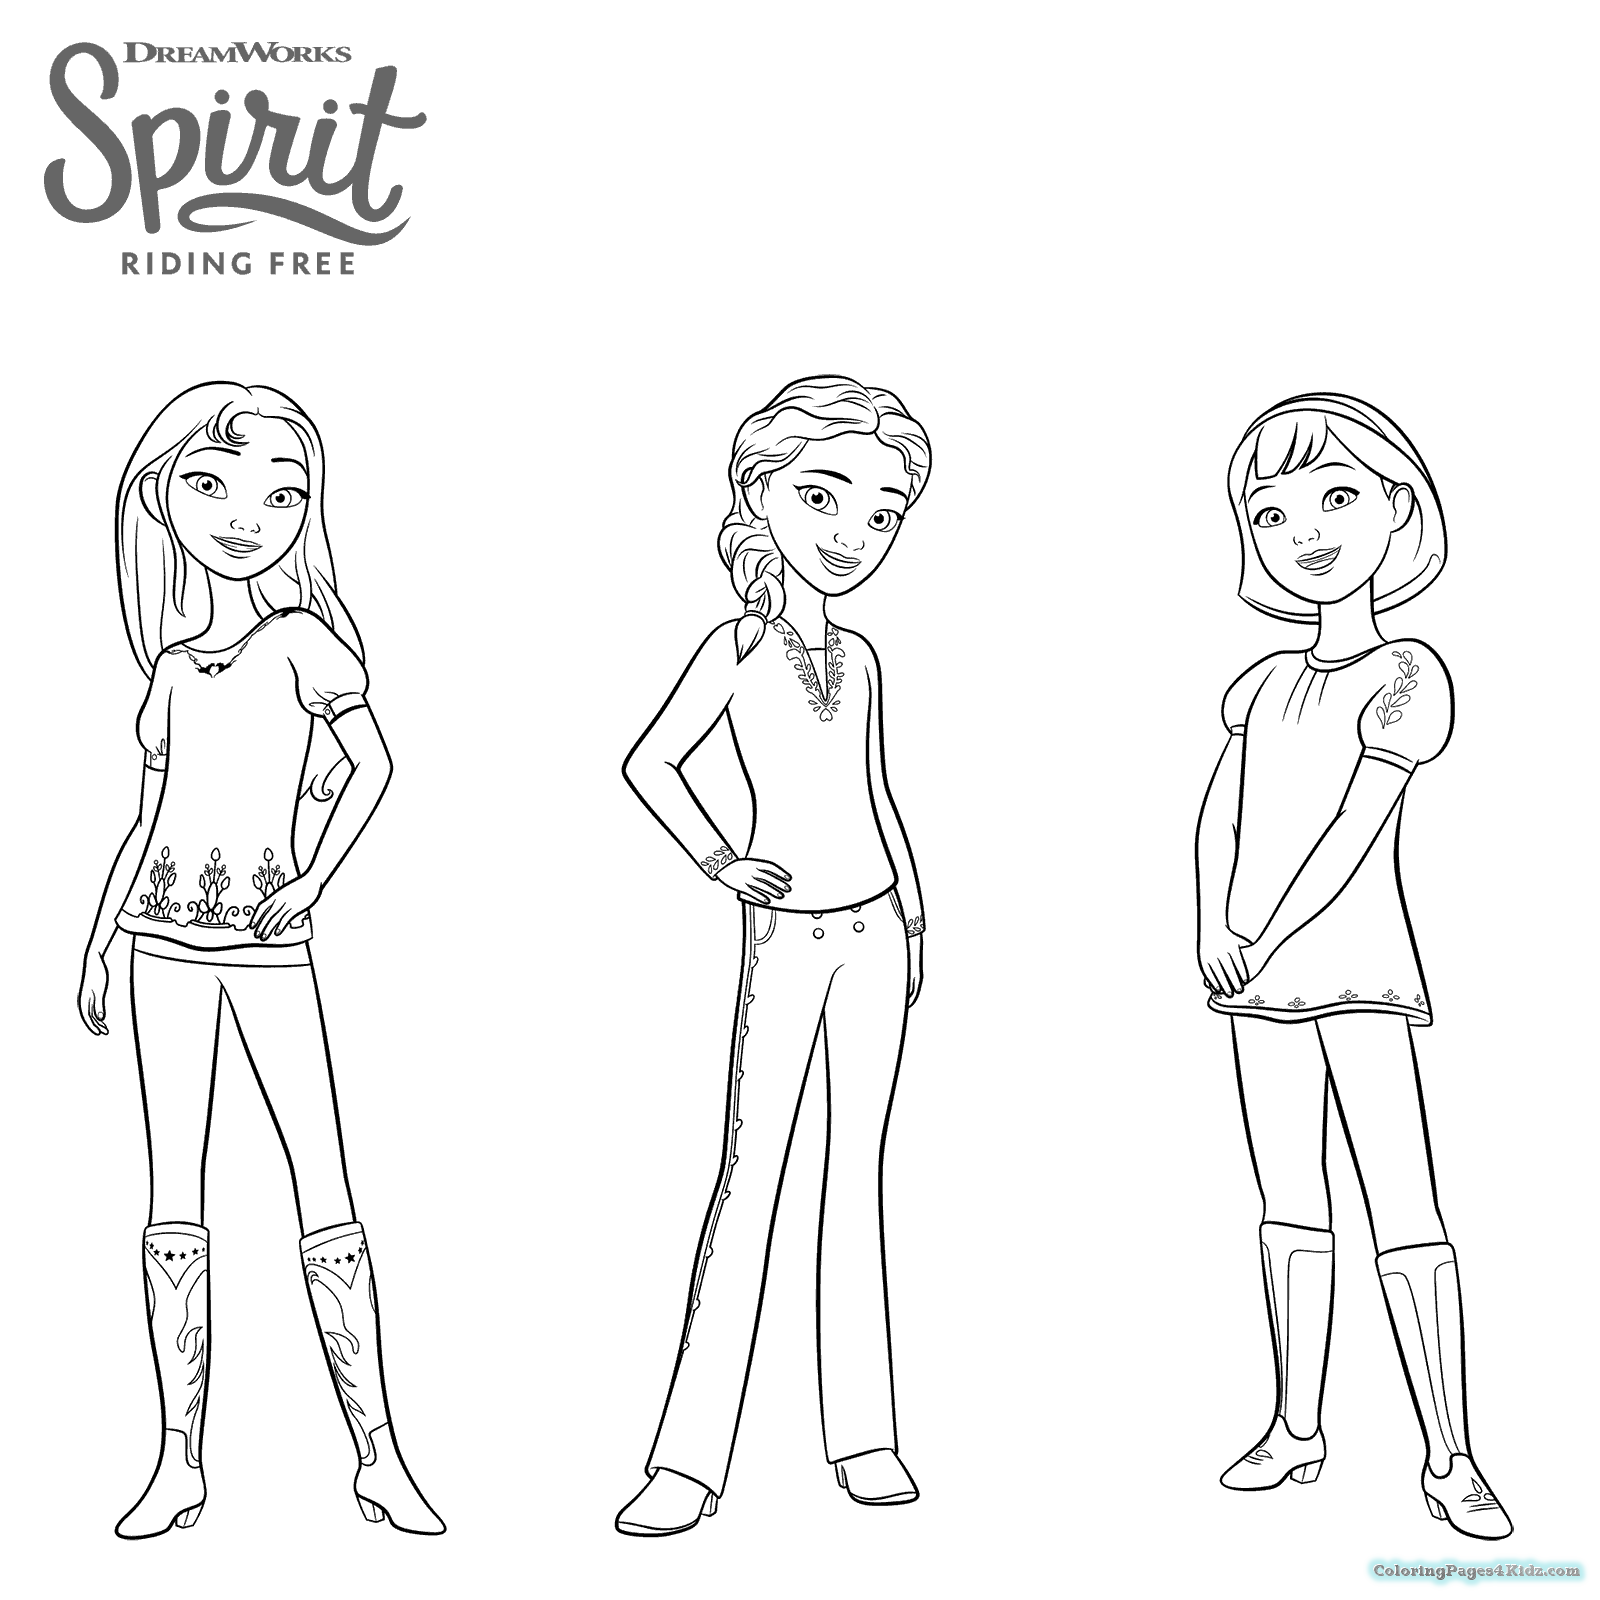 1600x1600 Spirit Riding Free Coloring Pages Coloring Pages For Kids Spirit